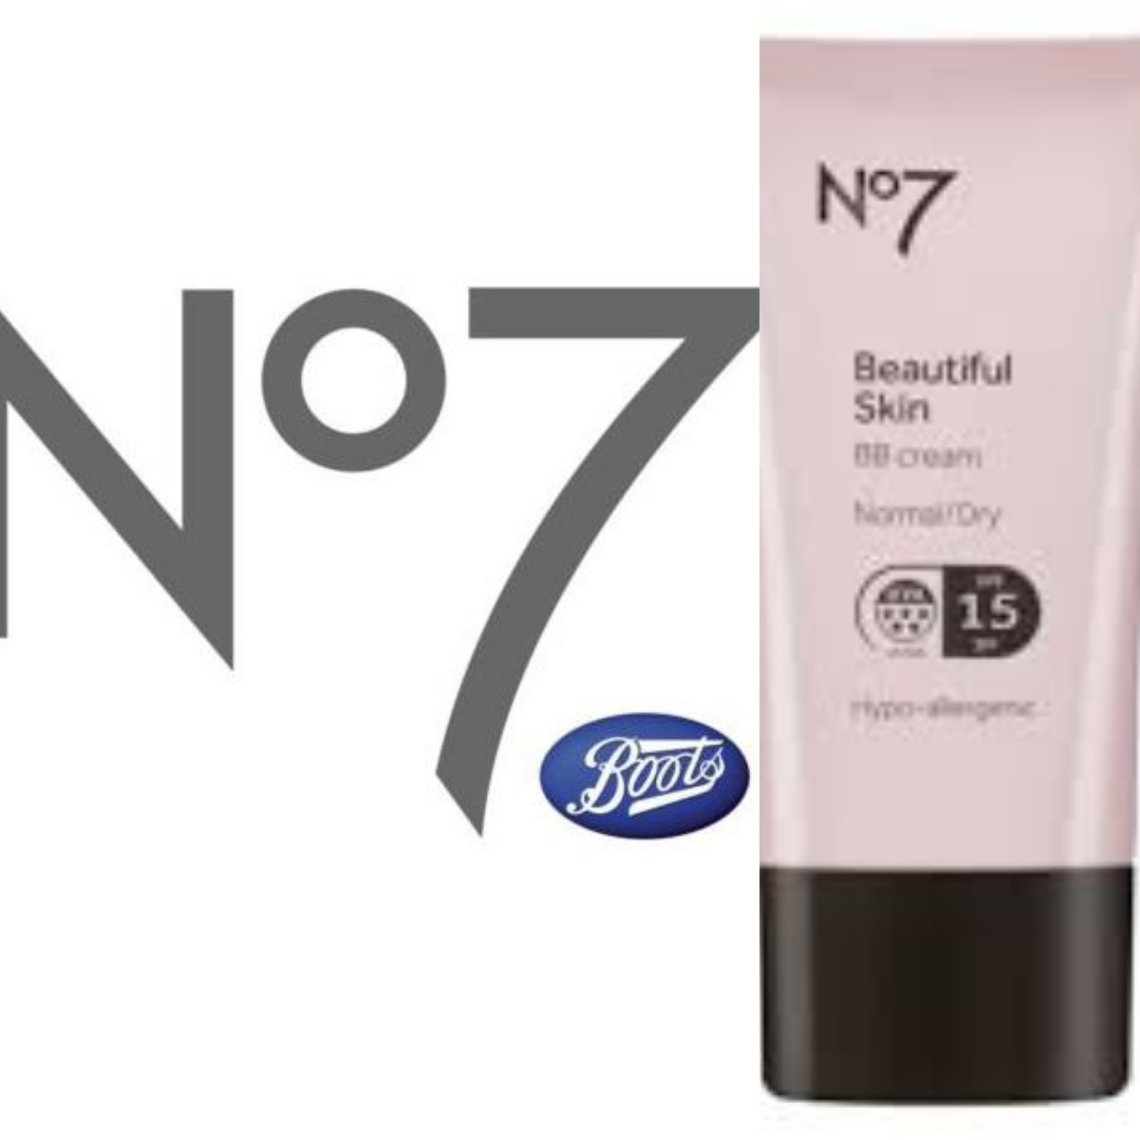 No 7 logo and B B cream